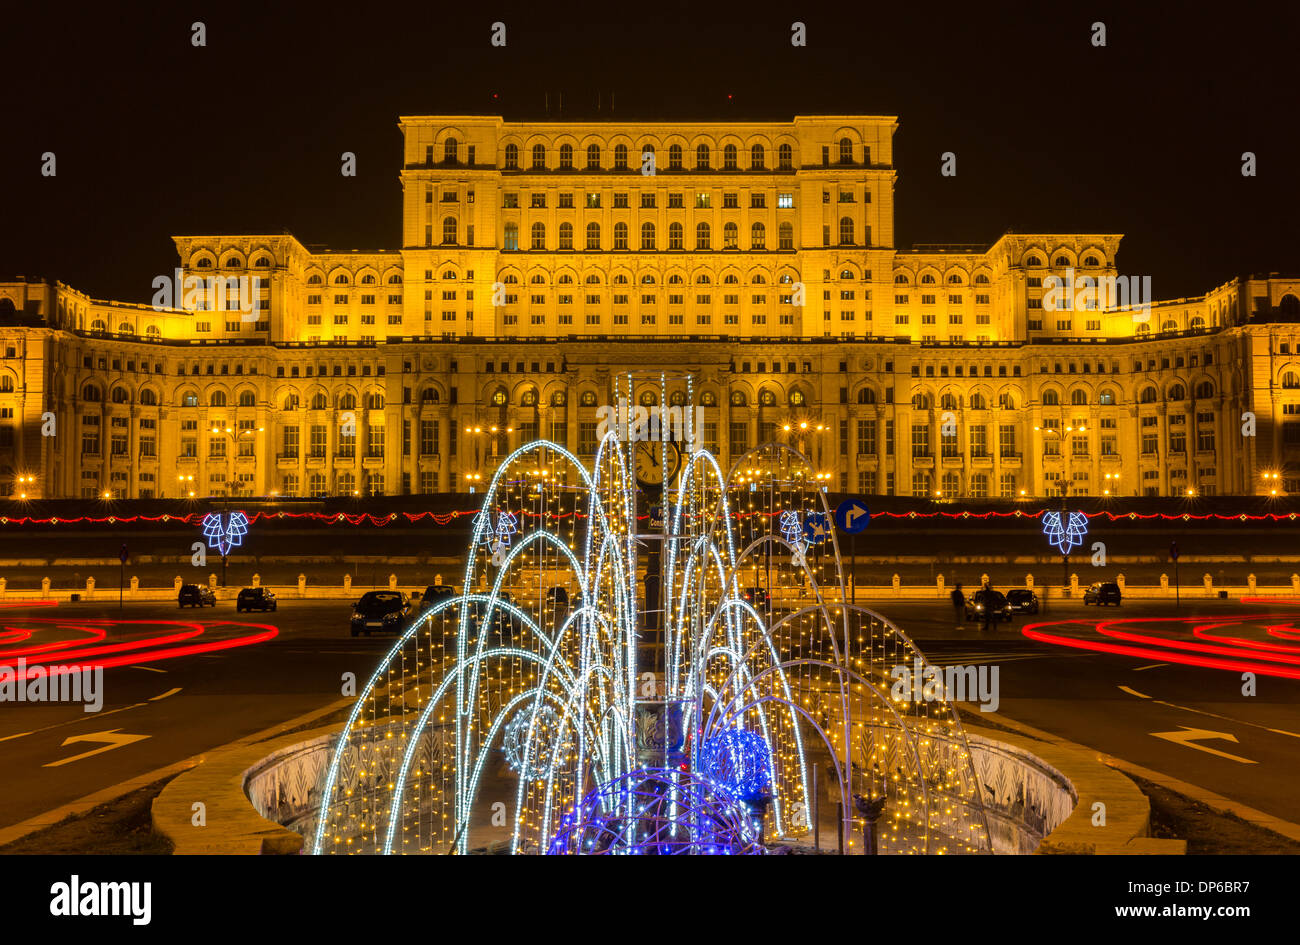 The Palace of the Parliament in Bucharest, Romania - Stock Image